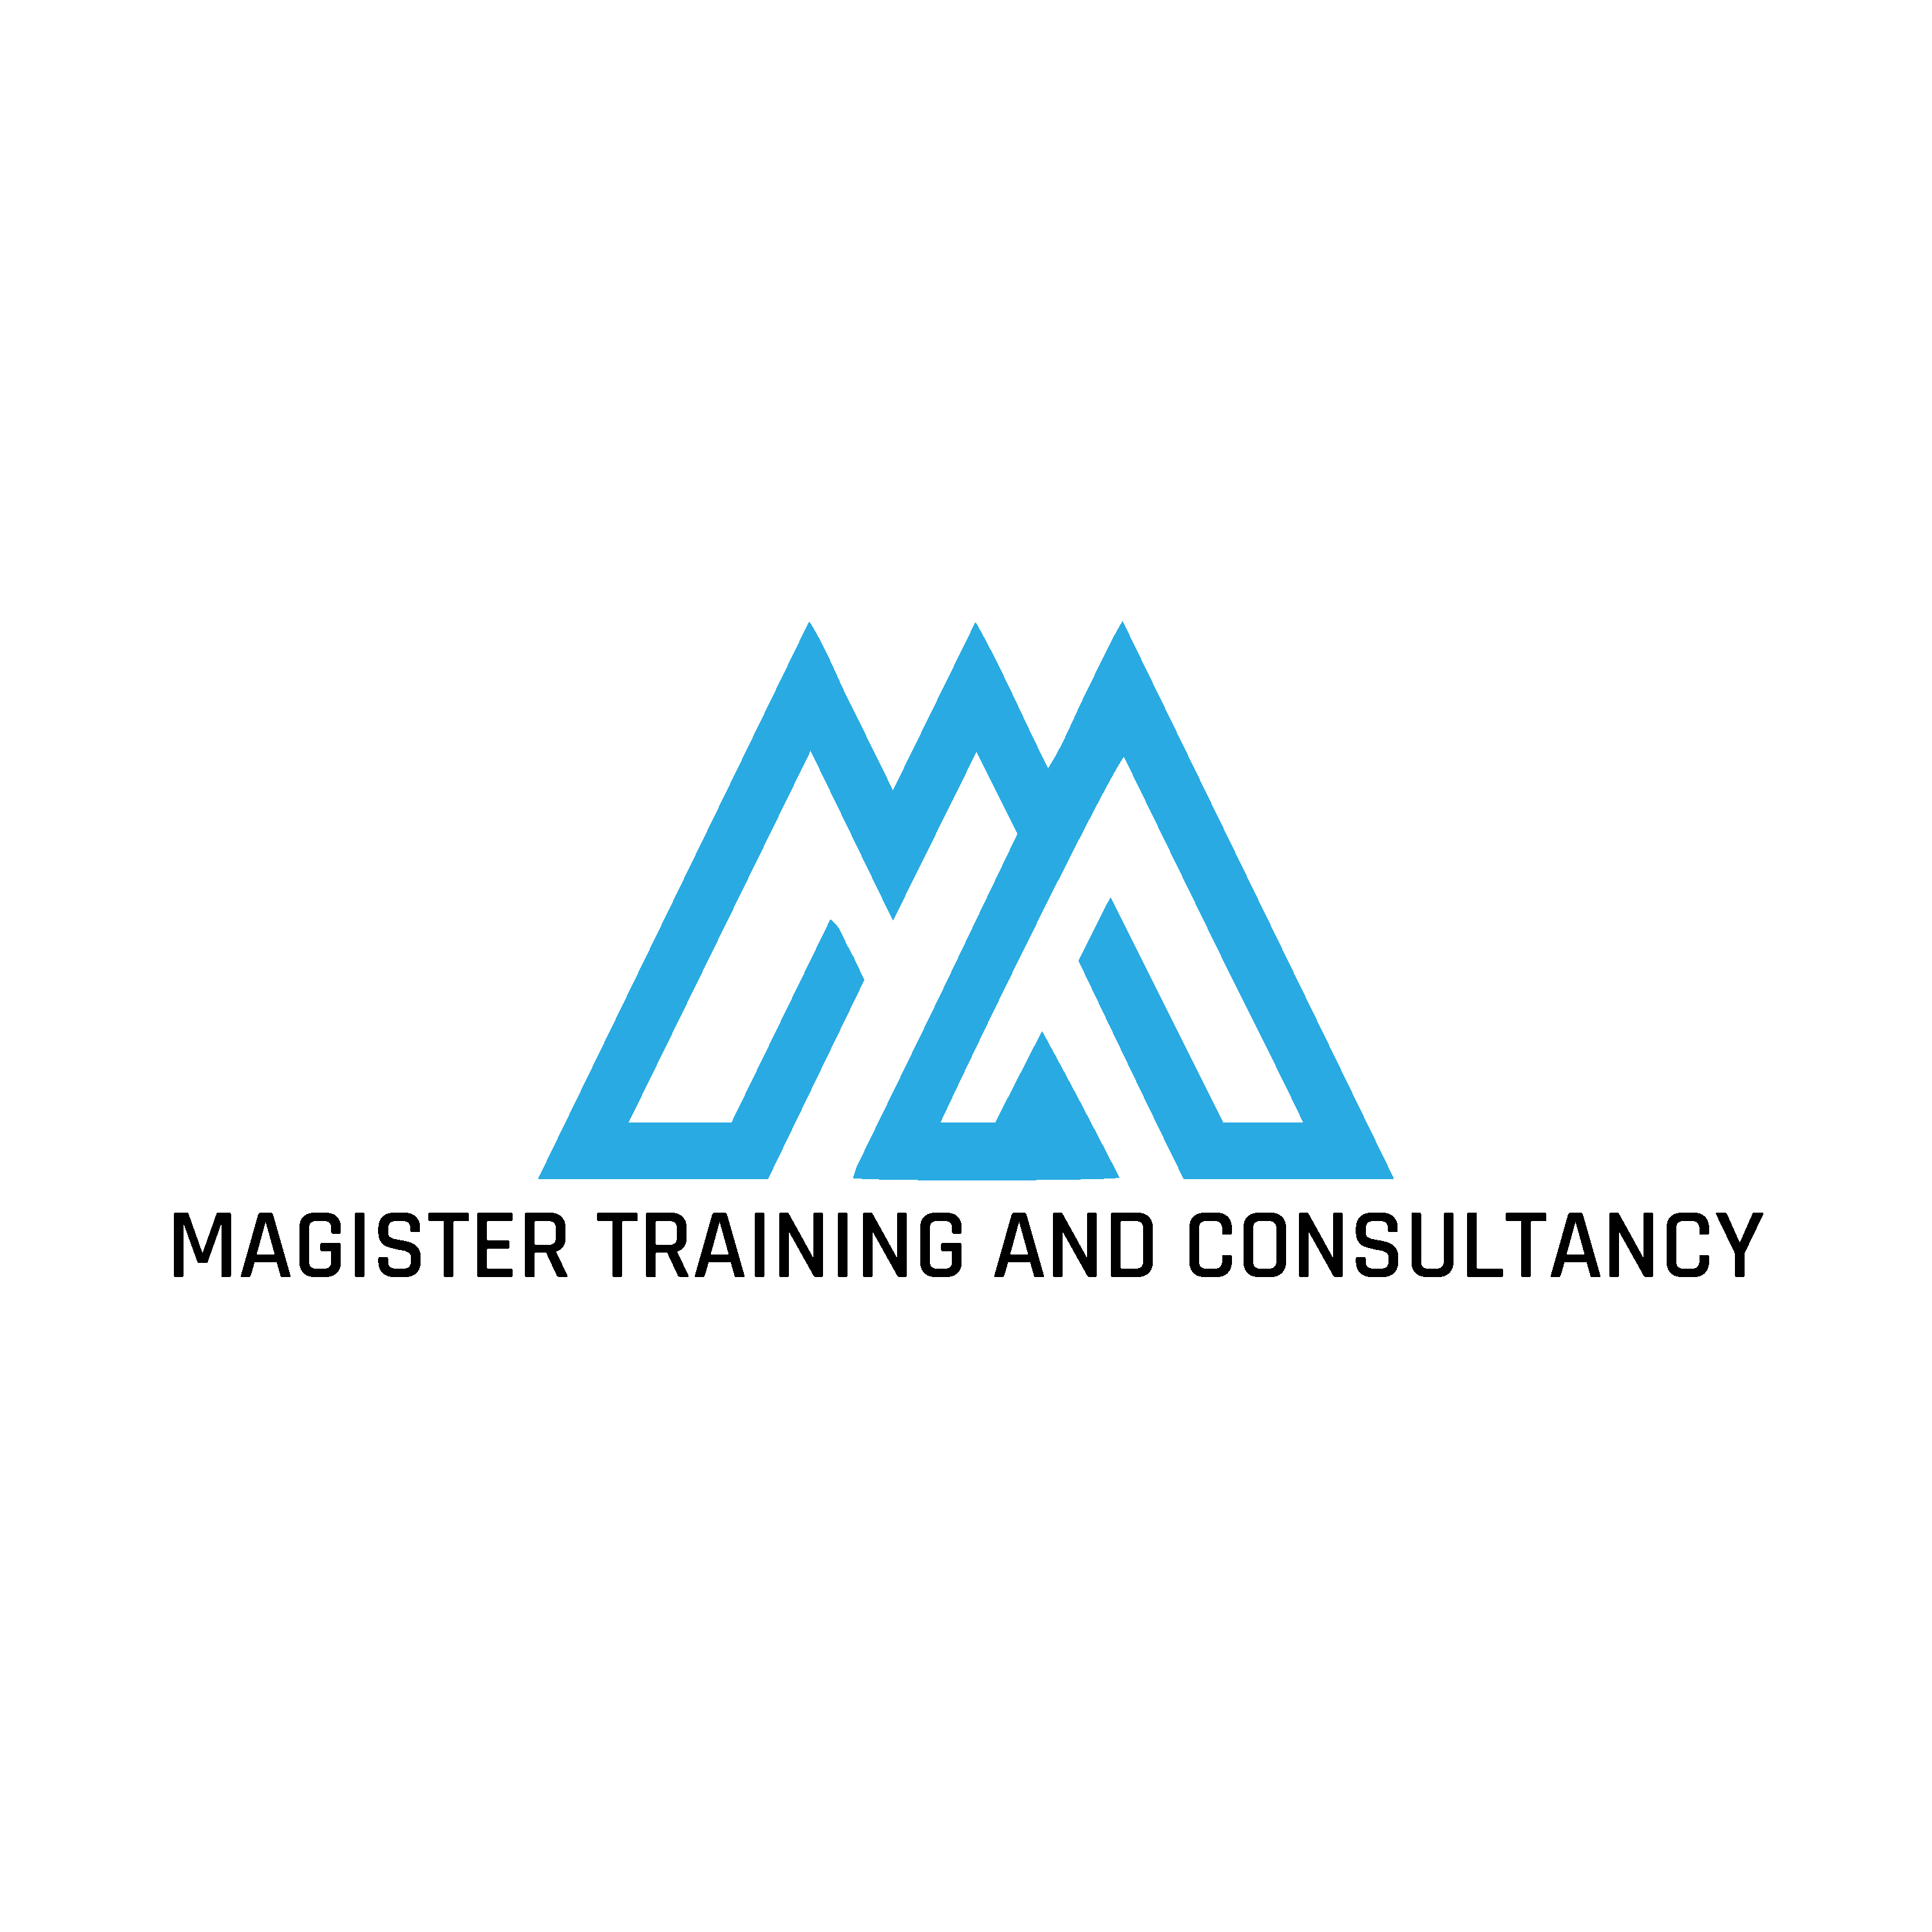 Magister Training and Consultancy